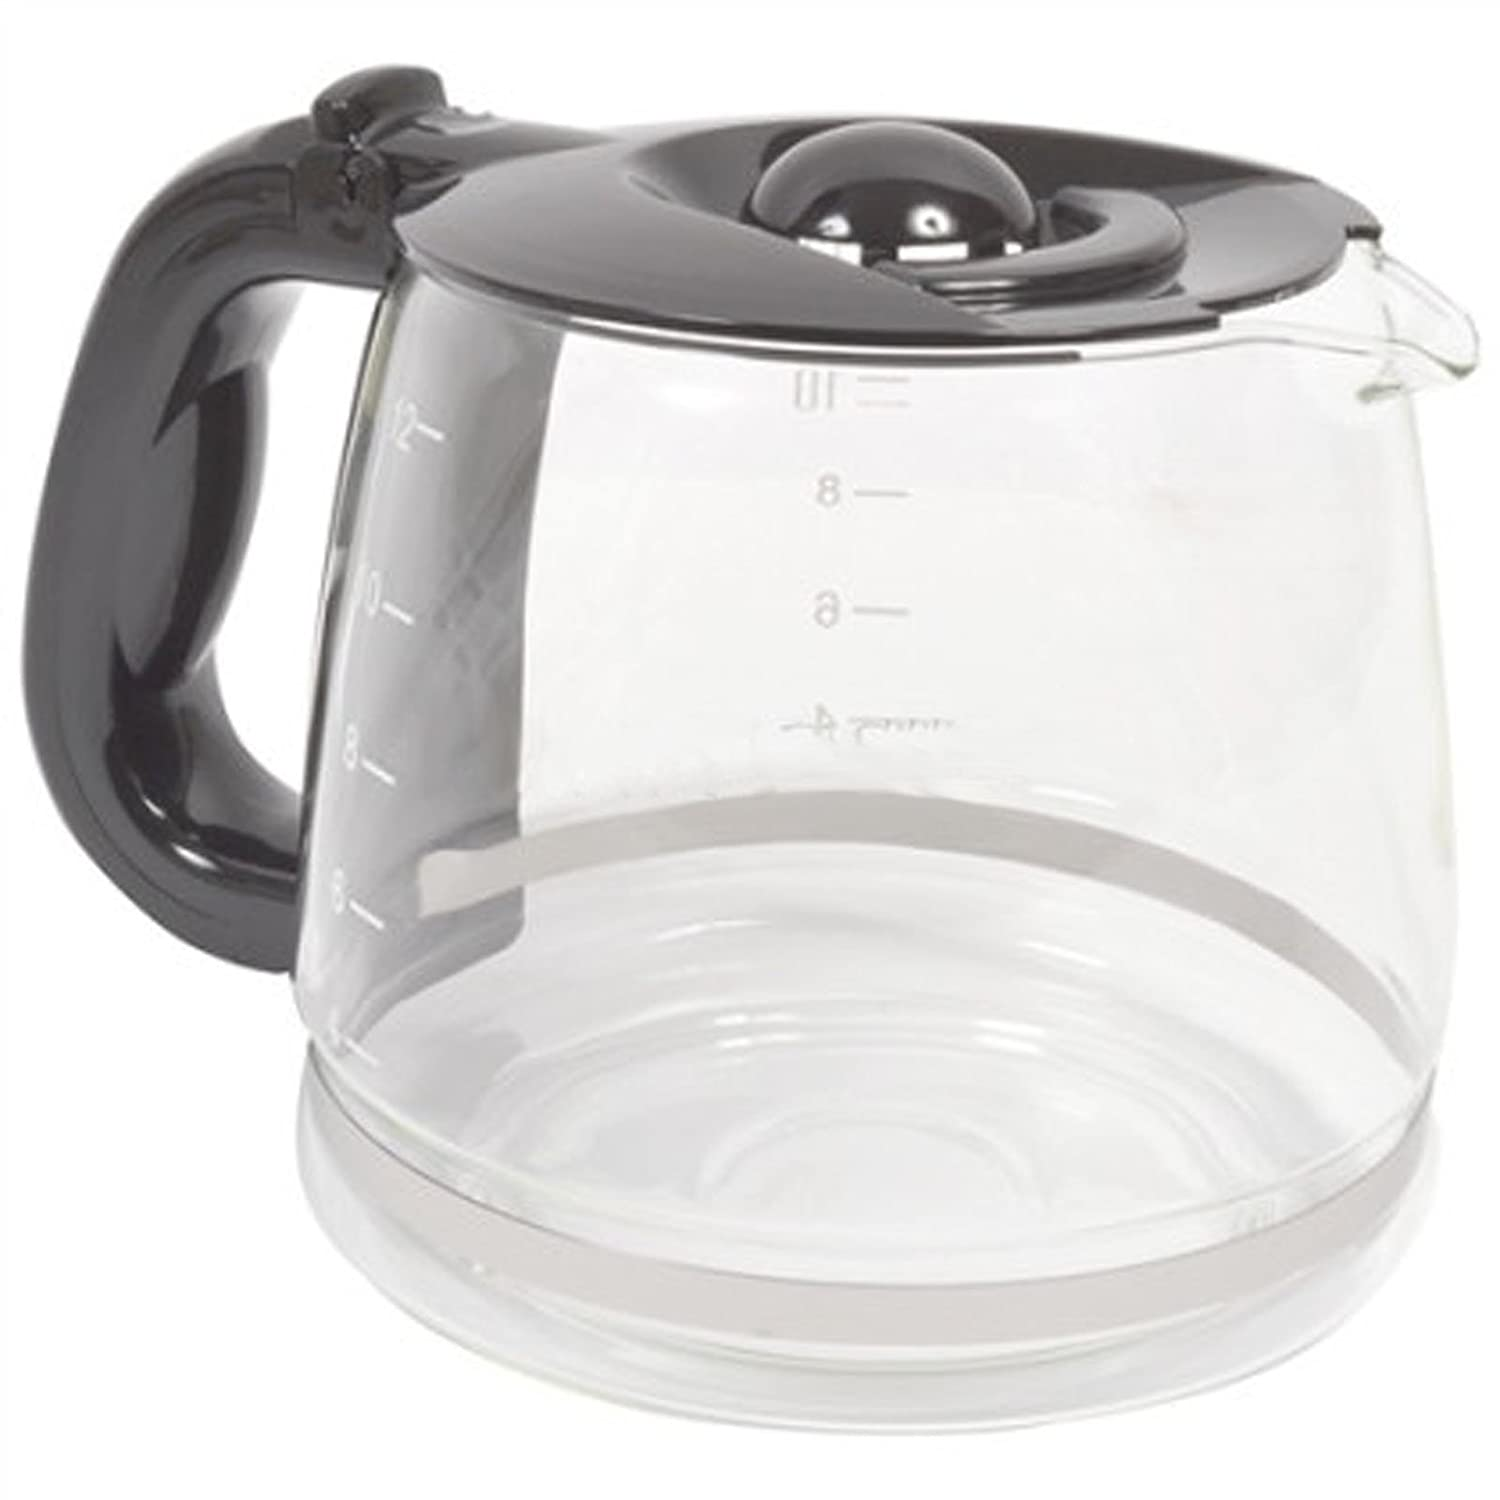 SPARES2GO Glass Jug Carafe for Russell Hobbs 18498-56 Cottage Country Cream Coffee Machine